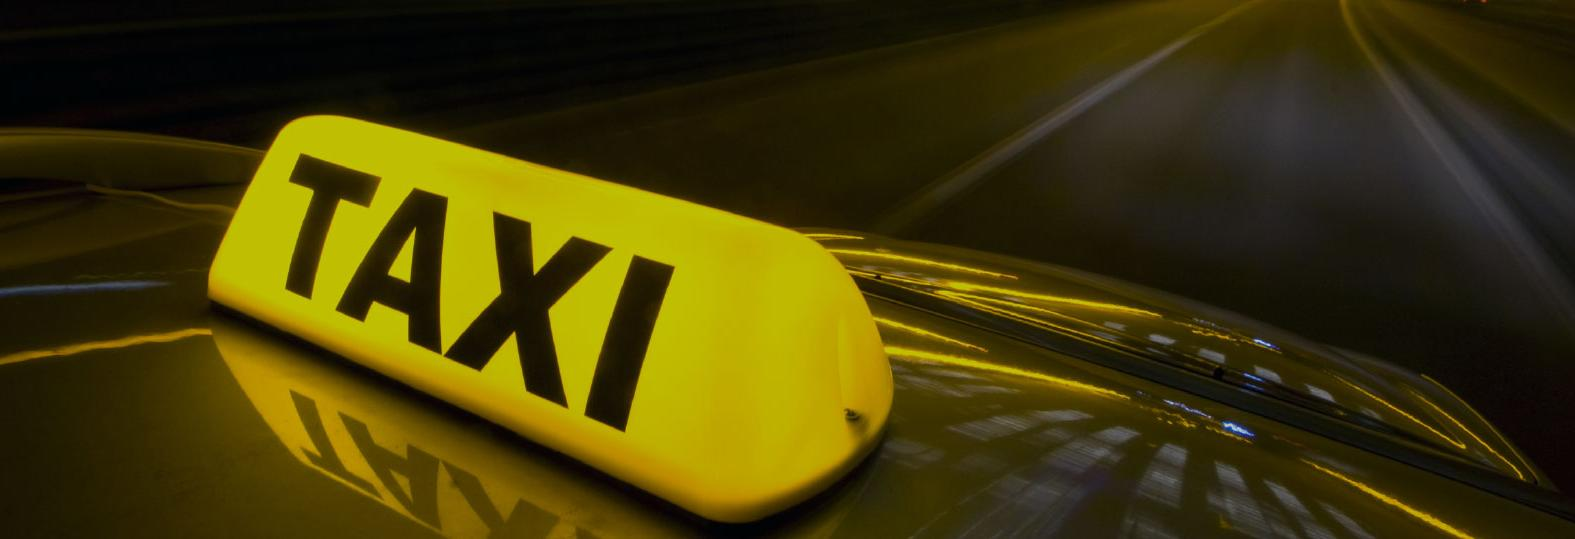 SKB Taxi & Limo in Millburn, New Jersey banner